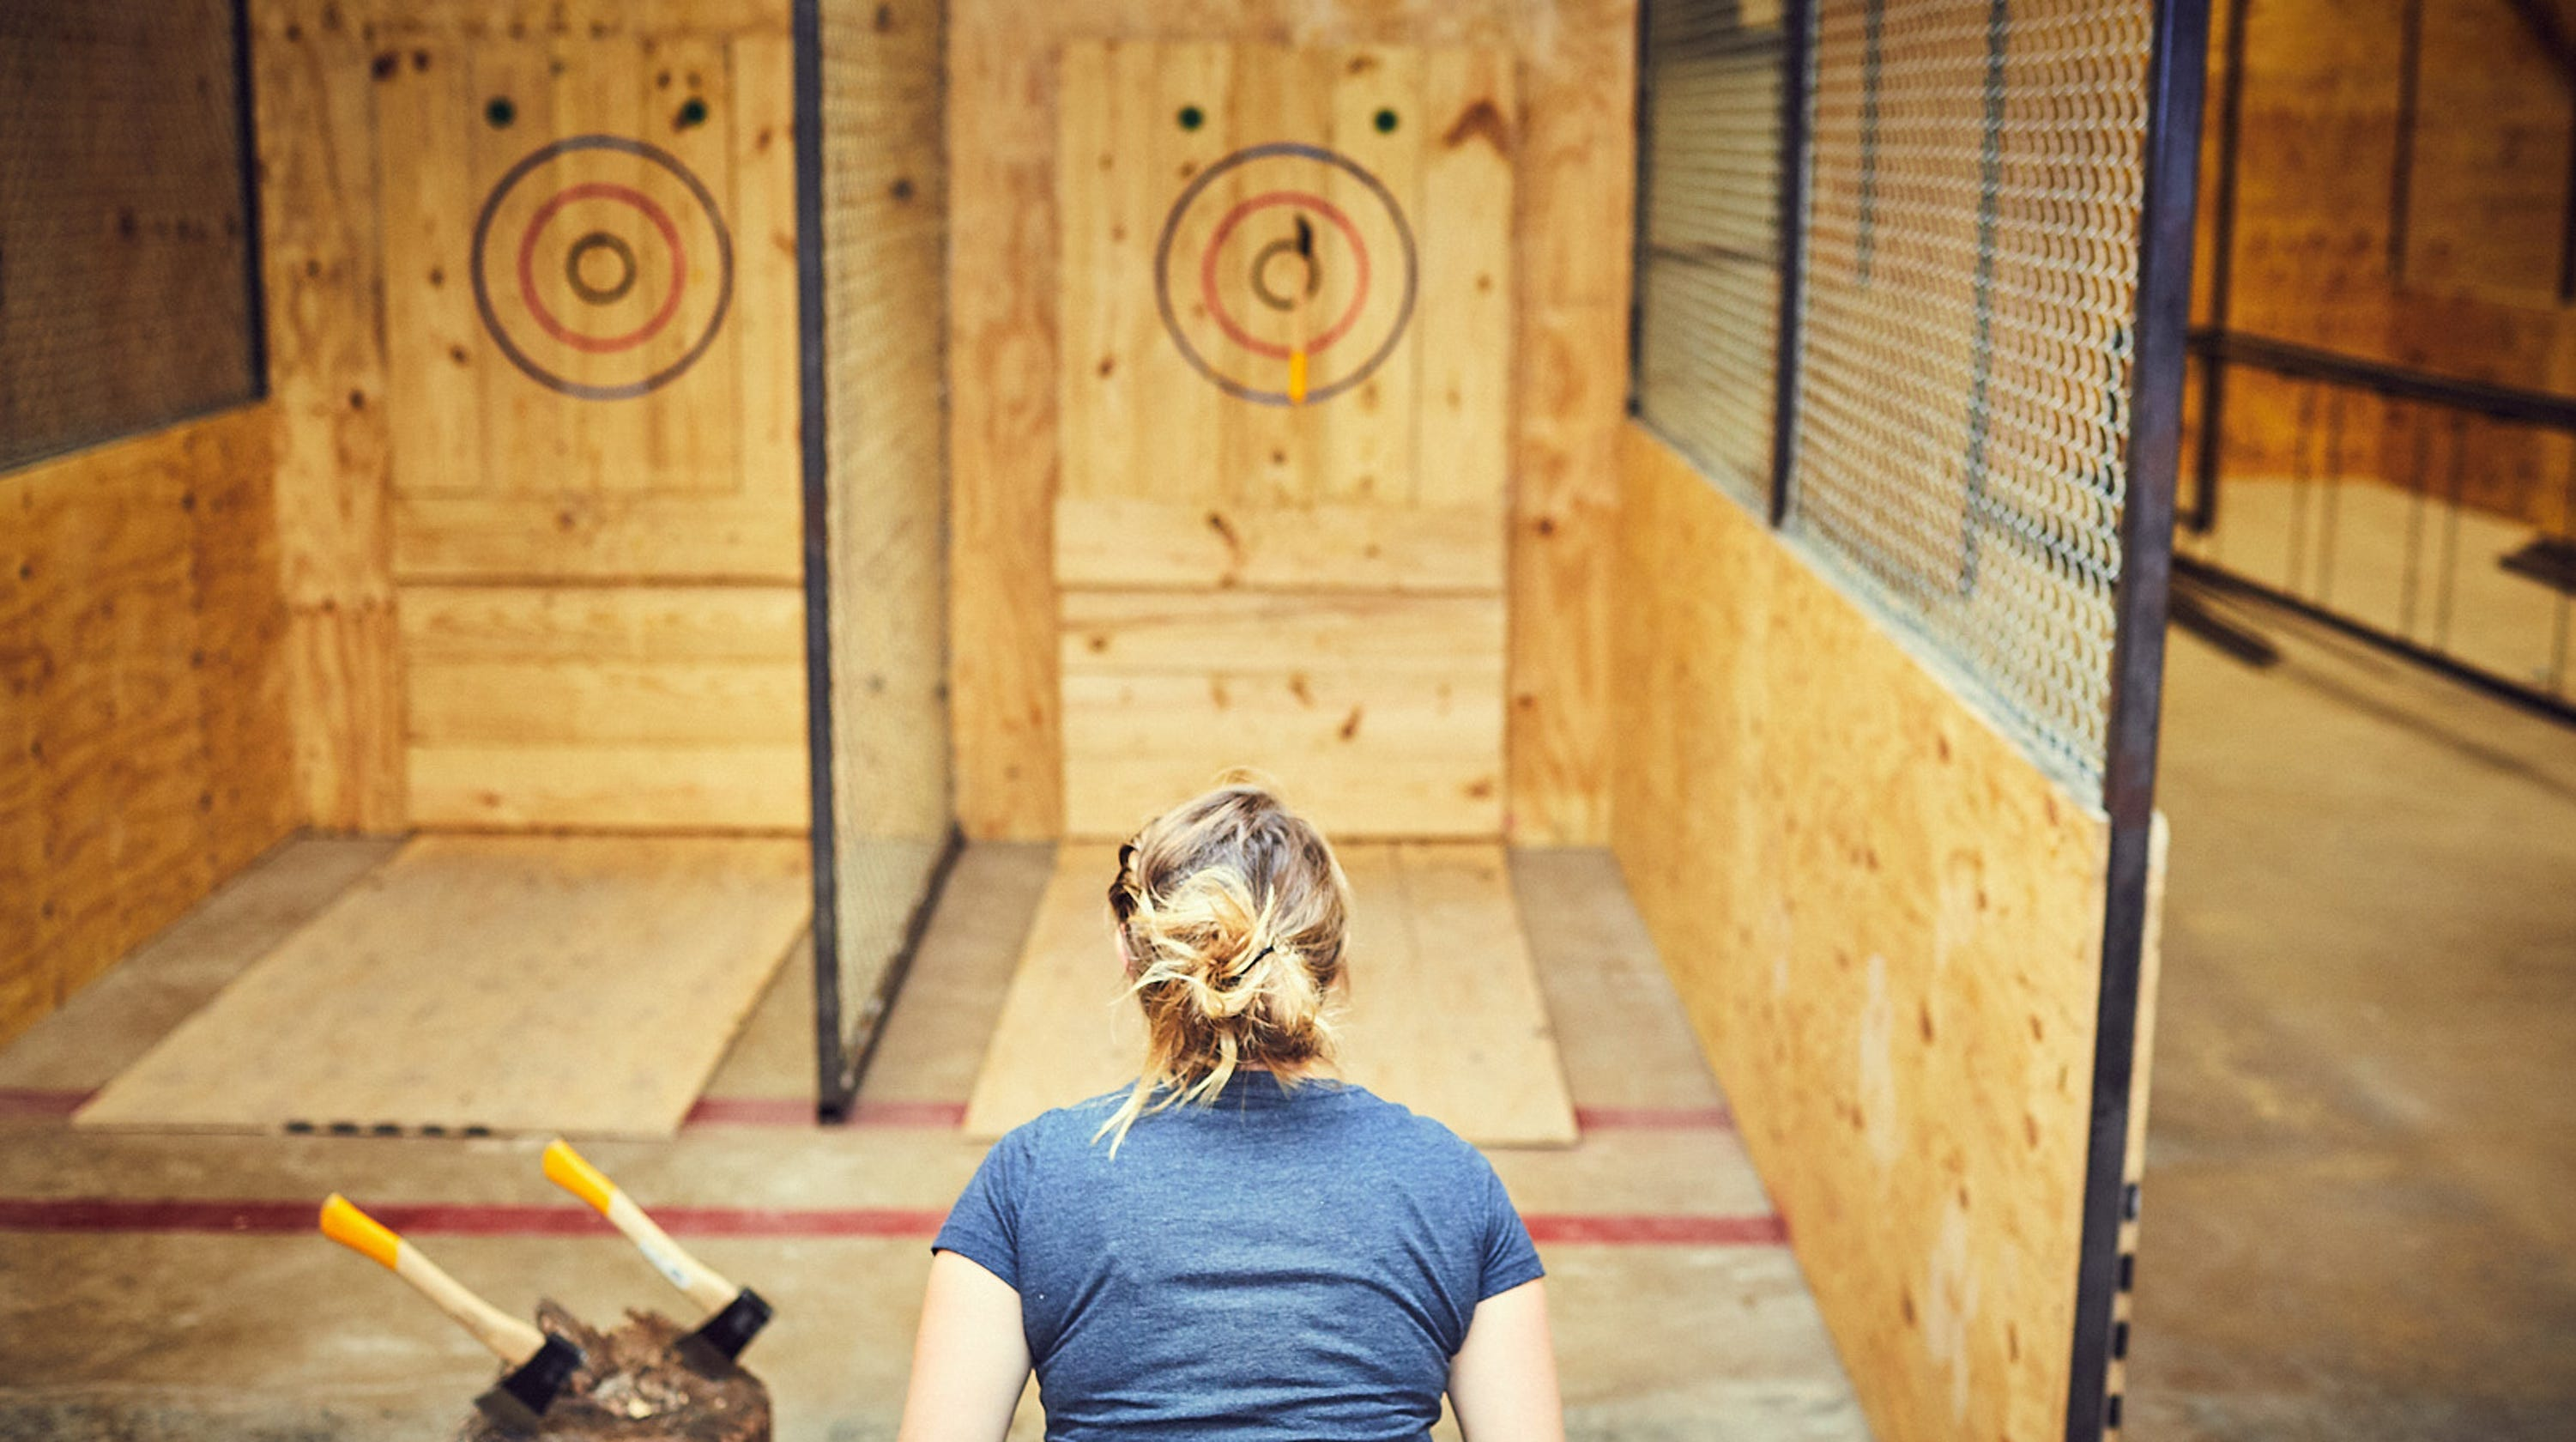 Urban Axes: Date night ideas include ax throwing in Over-the